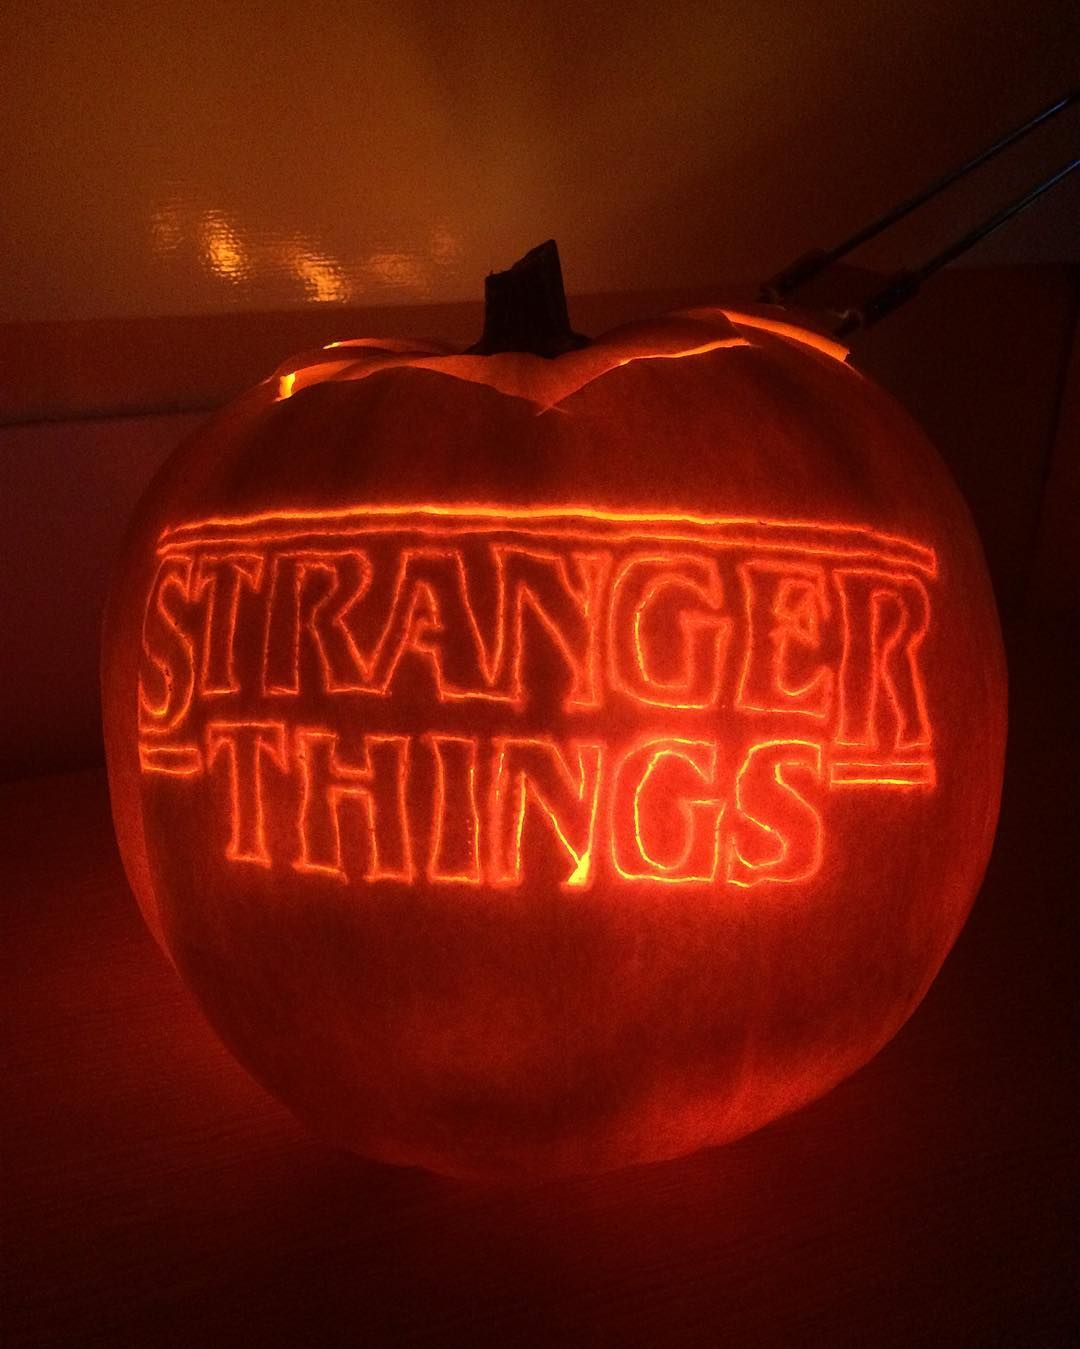 6 Perfect Pumpkin Ideas For All Fans Obsessed With Stranger Things Stranger Things Pumpkin Cute Pumpkin Carving Stranger Things Halloween